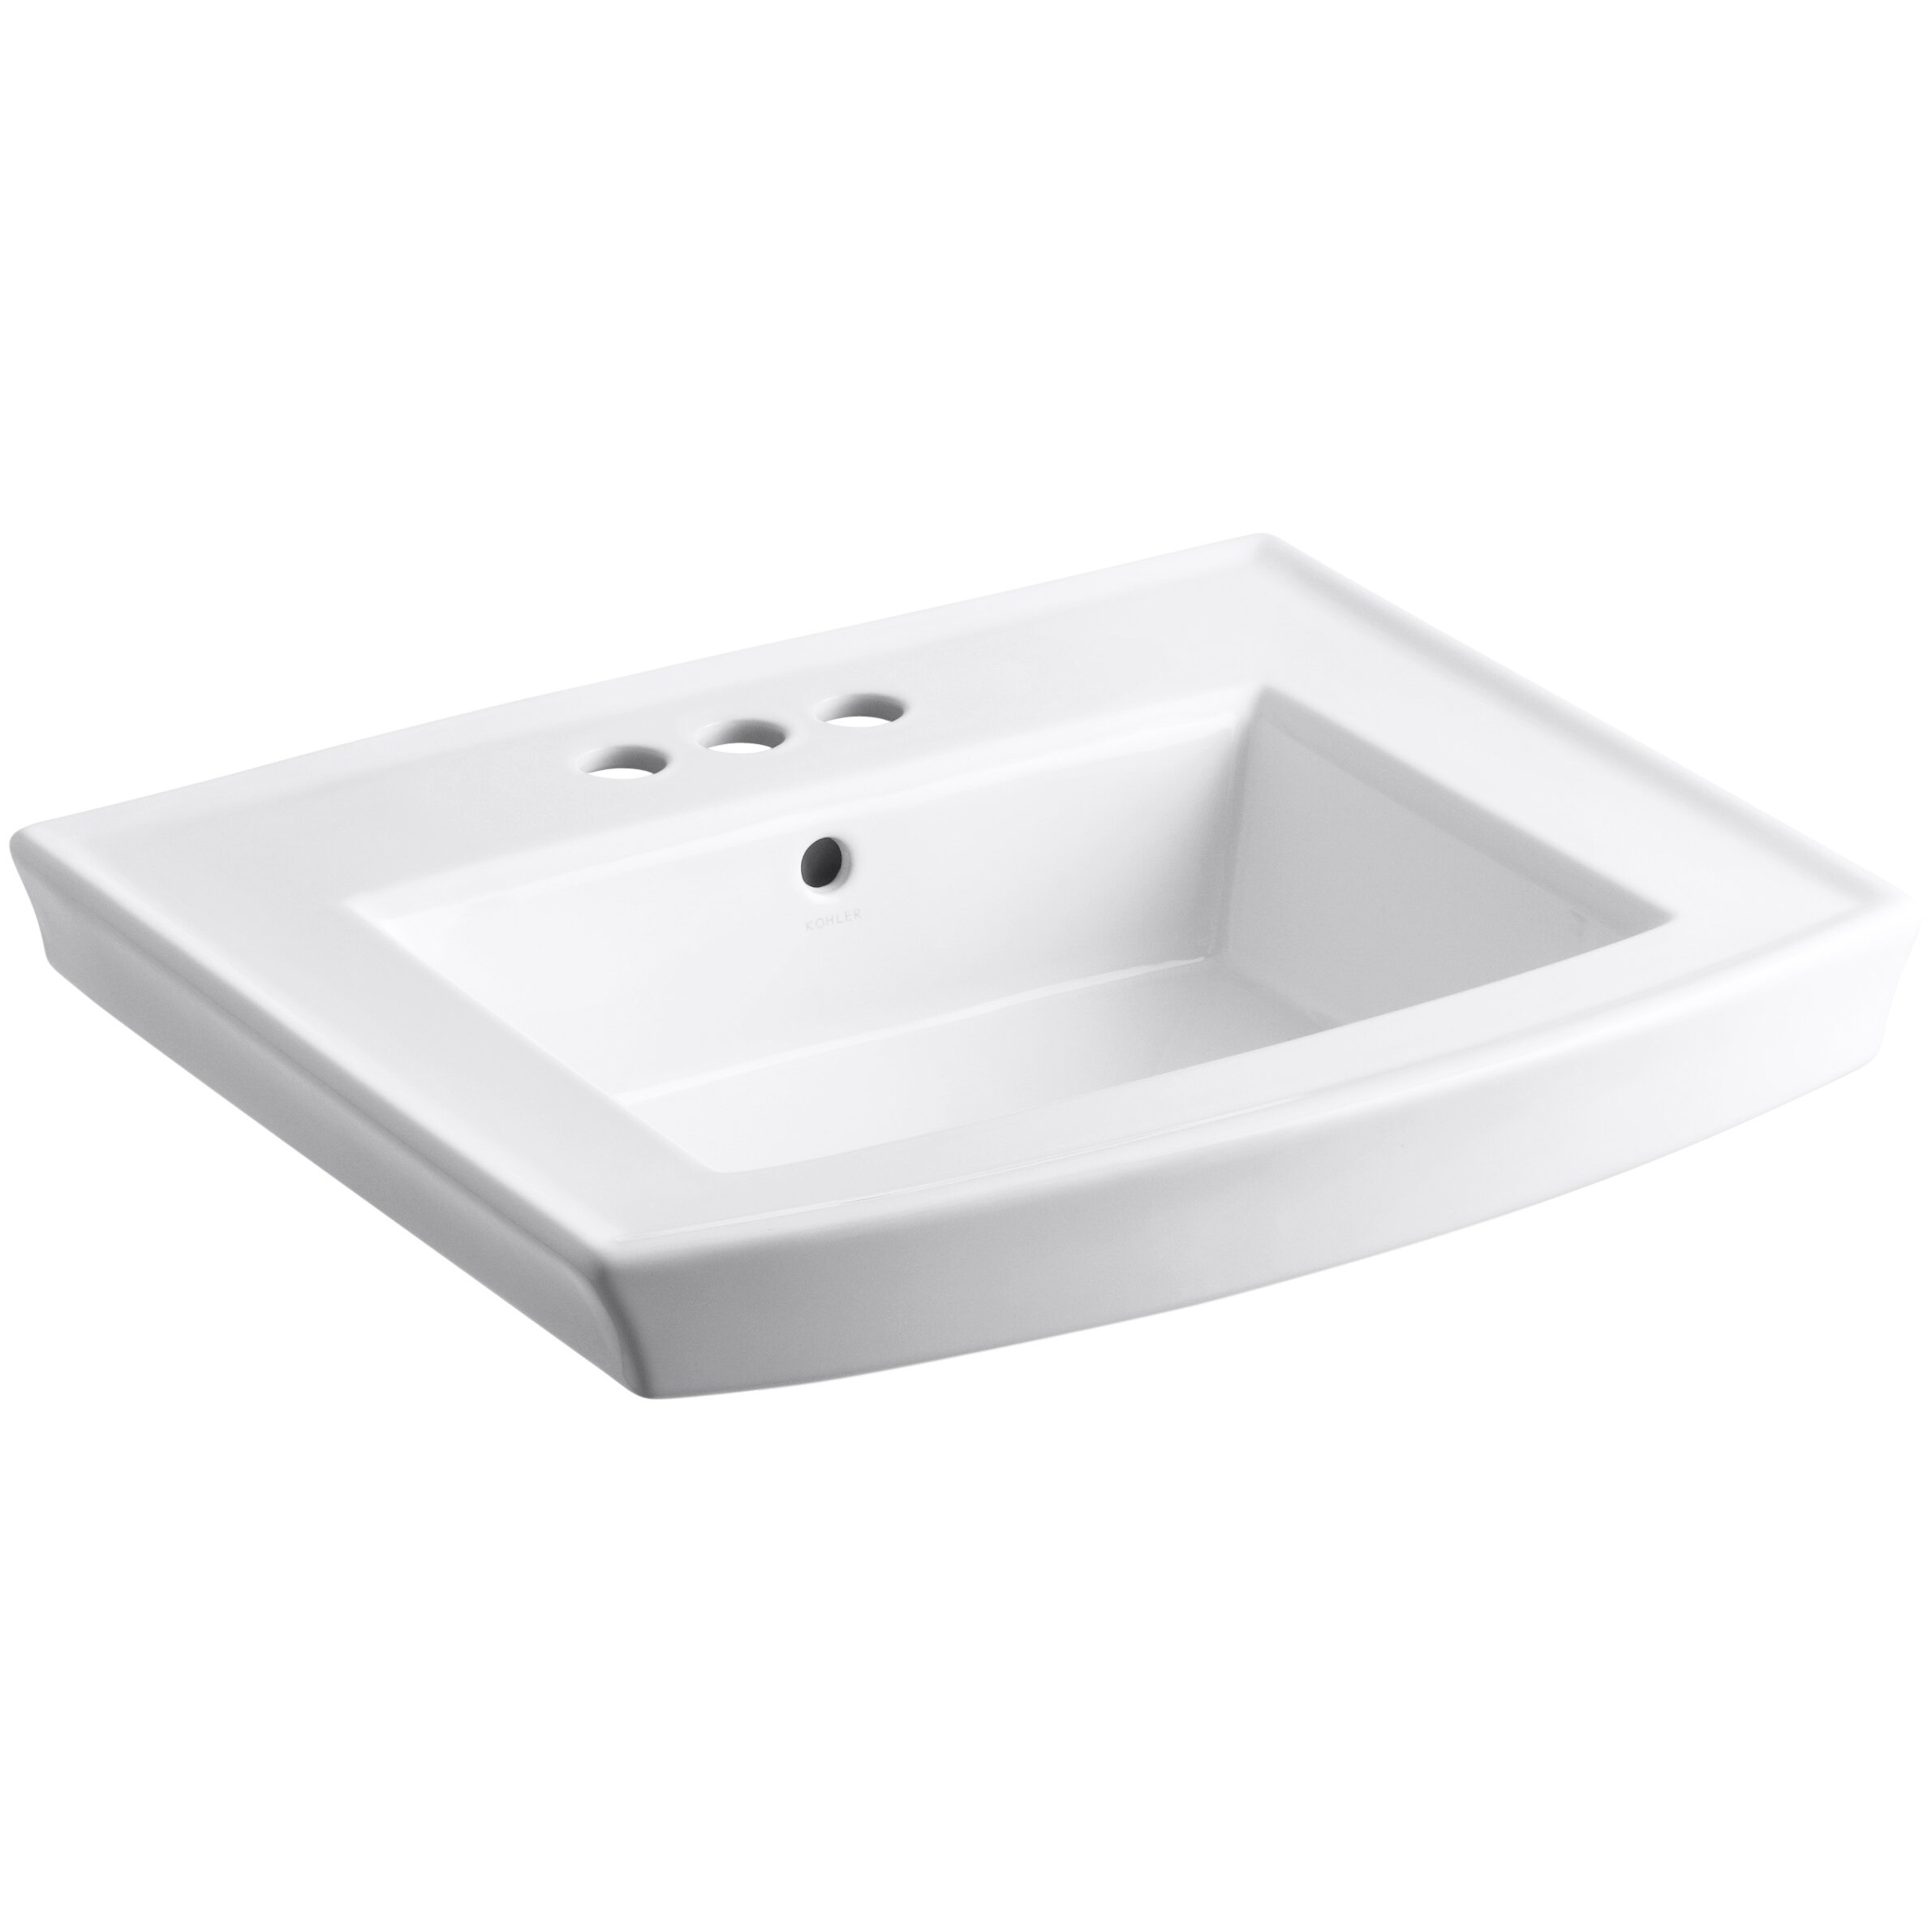 Bathroom Sinks Kohler : Home Improvement Bathroom Fixtures ... Pedestal Bathroom Sinks Kohler ...